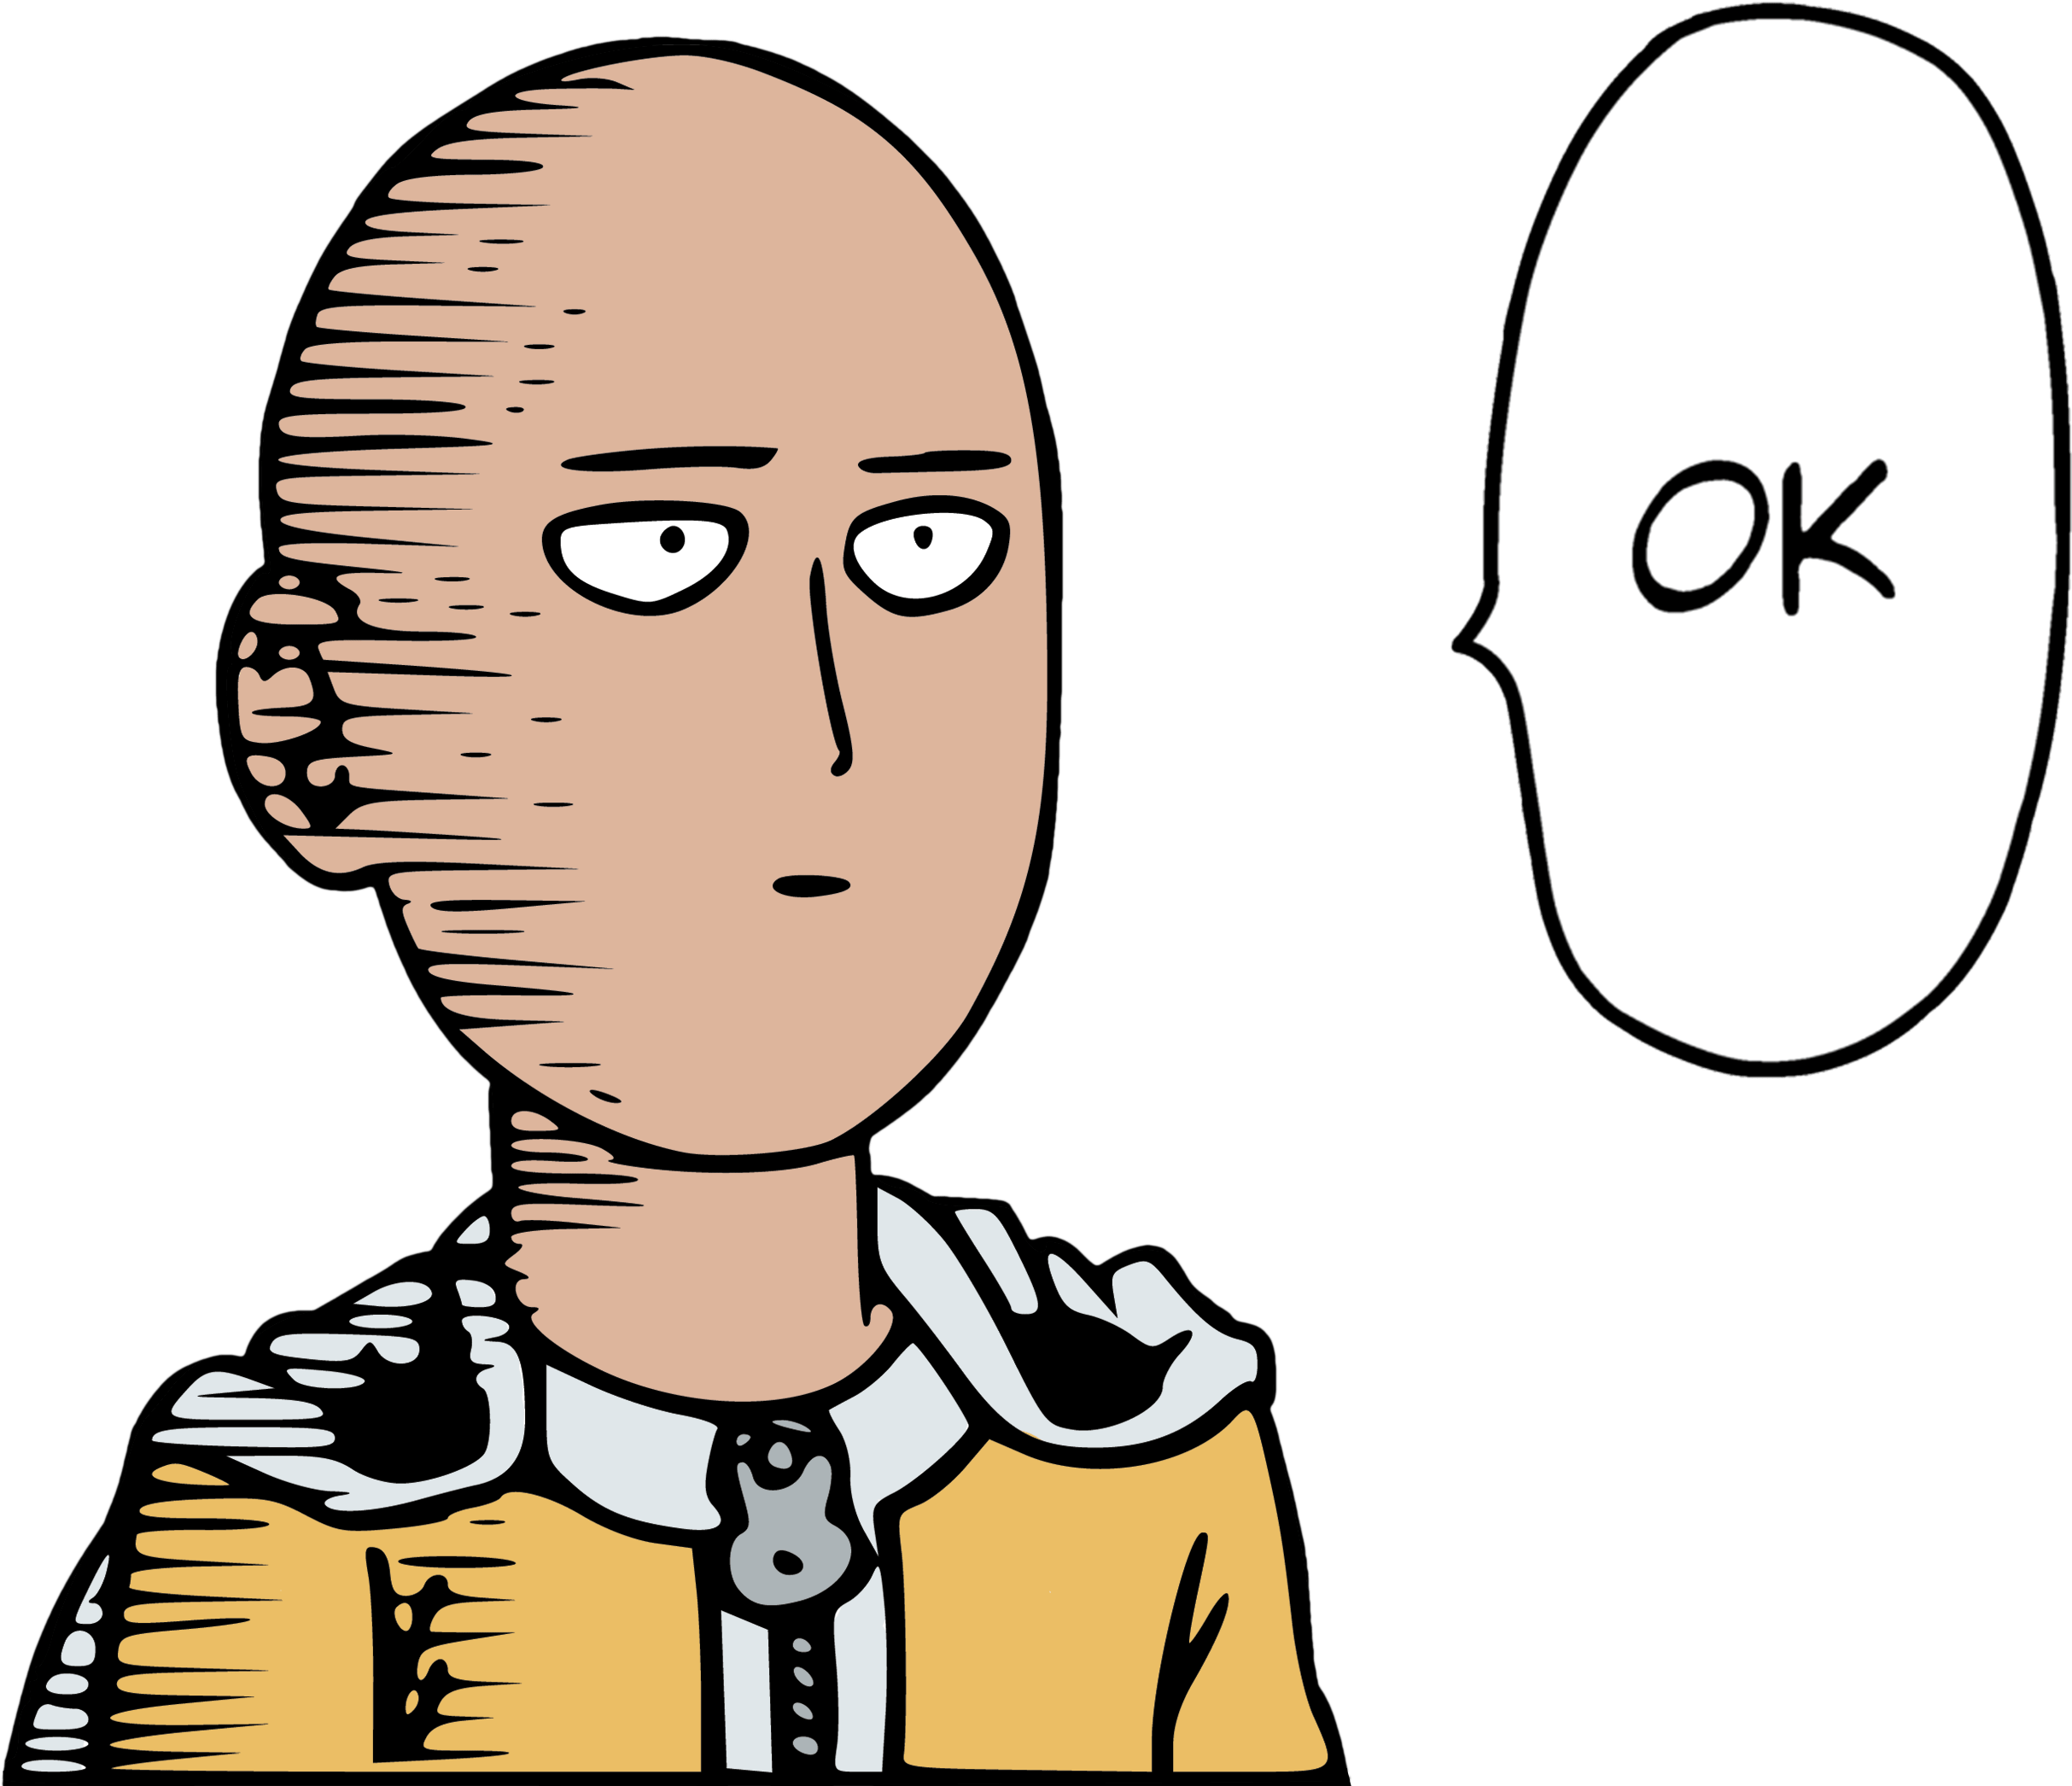 Ok Face Cliparts - Saitama Ok One Punch Man - Png Download ...